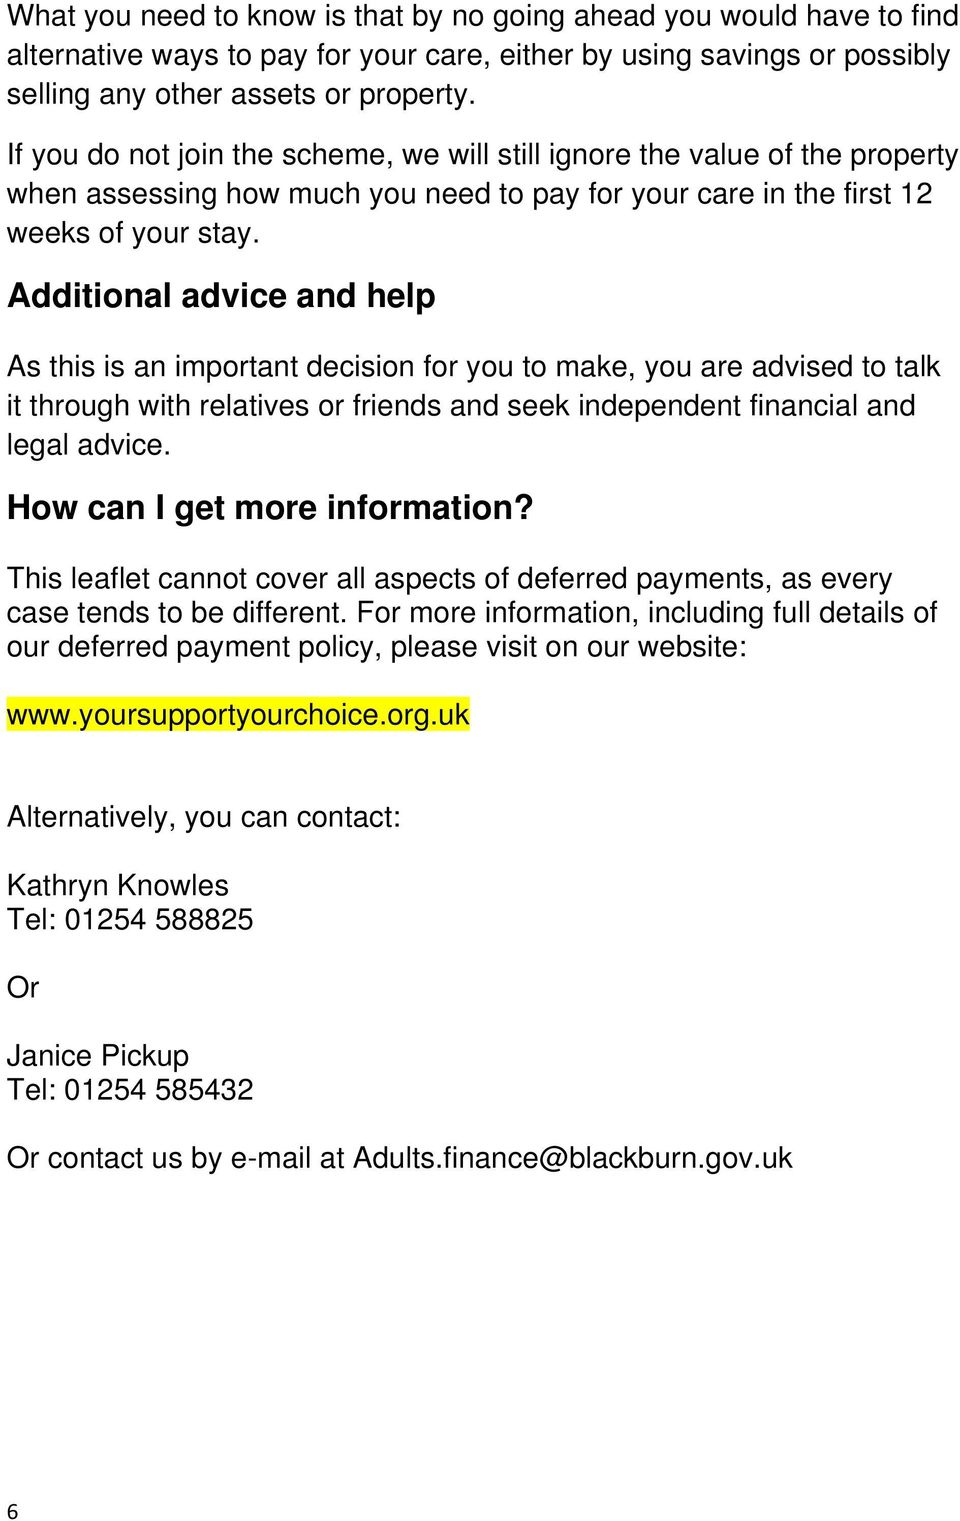 Additional advice and help As this is an important decision for you to make, you are advised to talk it through with relatives or friends and seek independent financial and legal advice.